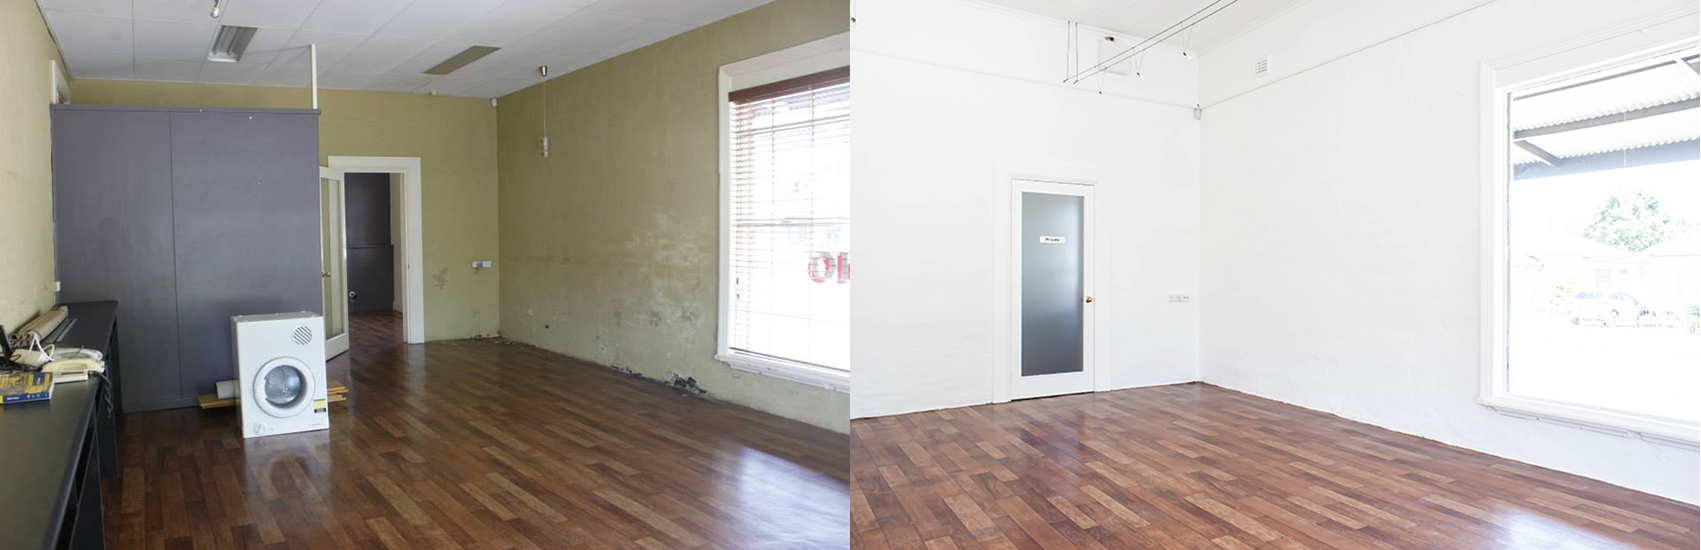 The gallery space, before and after renovations in 2014.